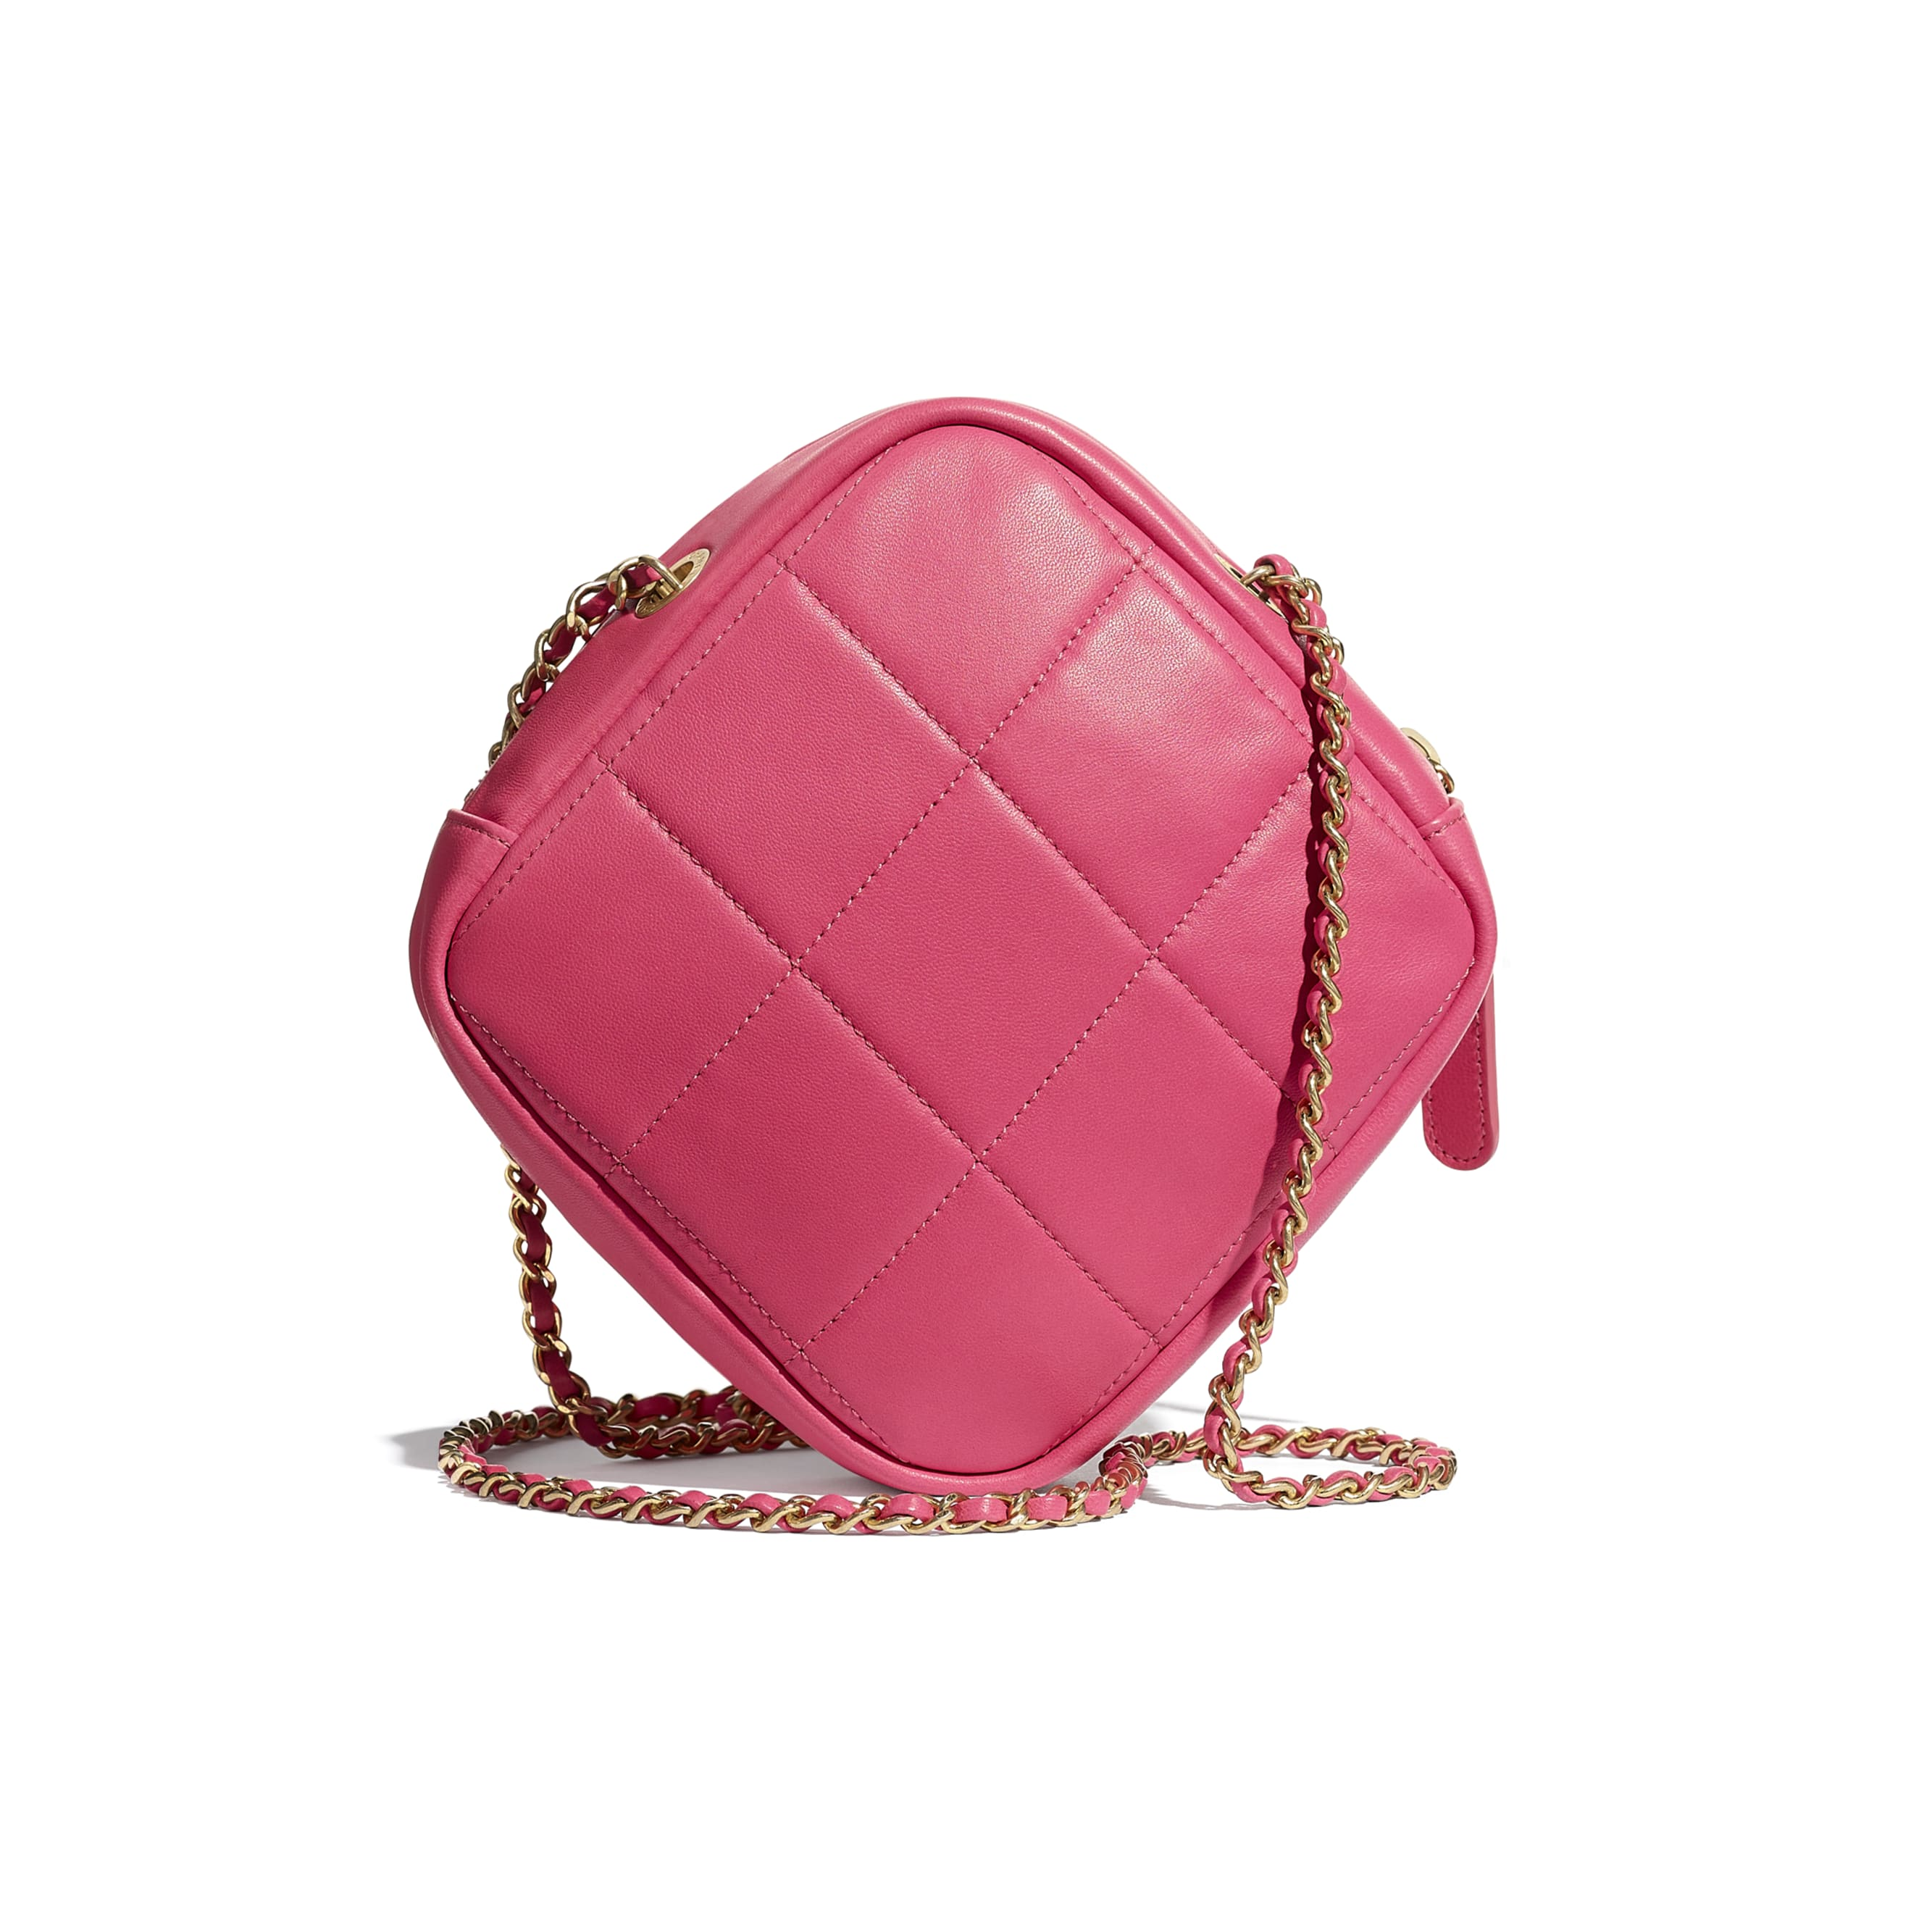 Small Diamond Bag - Pink - Lambskin - CHANEL - Alternative view - see standard sized version